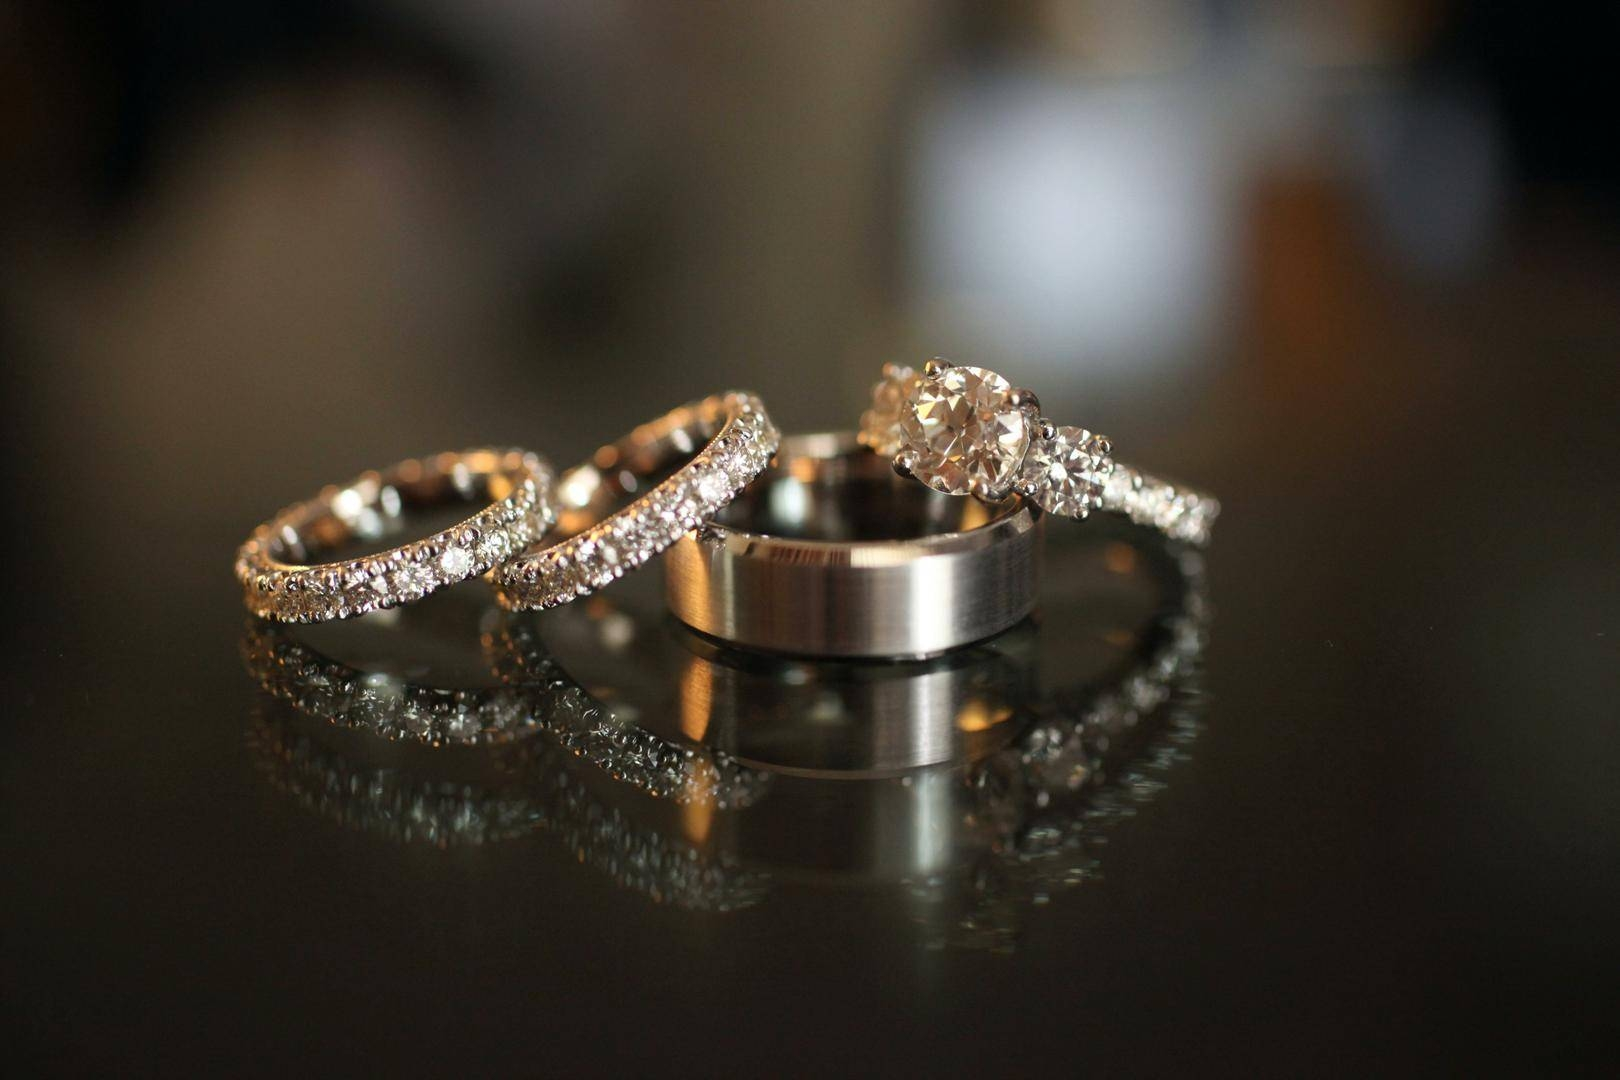 Inspiring Wedding Ring Sets For Brides & Grooms – Inside Weddings Pertaining To Wedding Rings For Bride And Groom Sets (View 11 of 15)